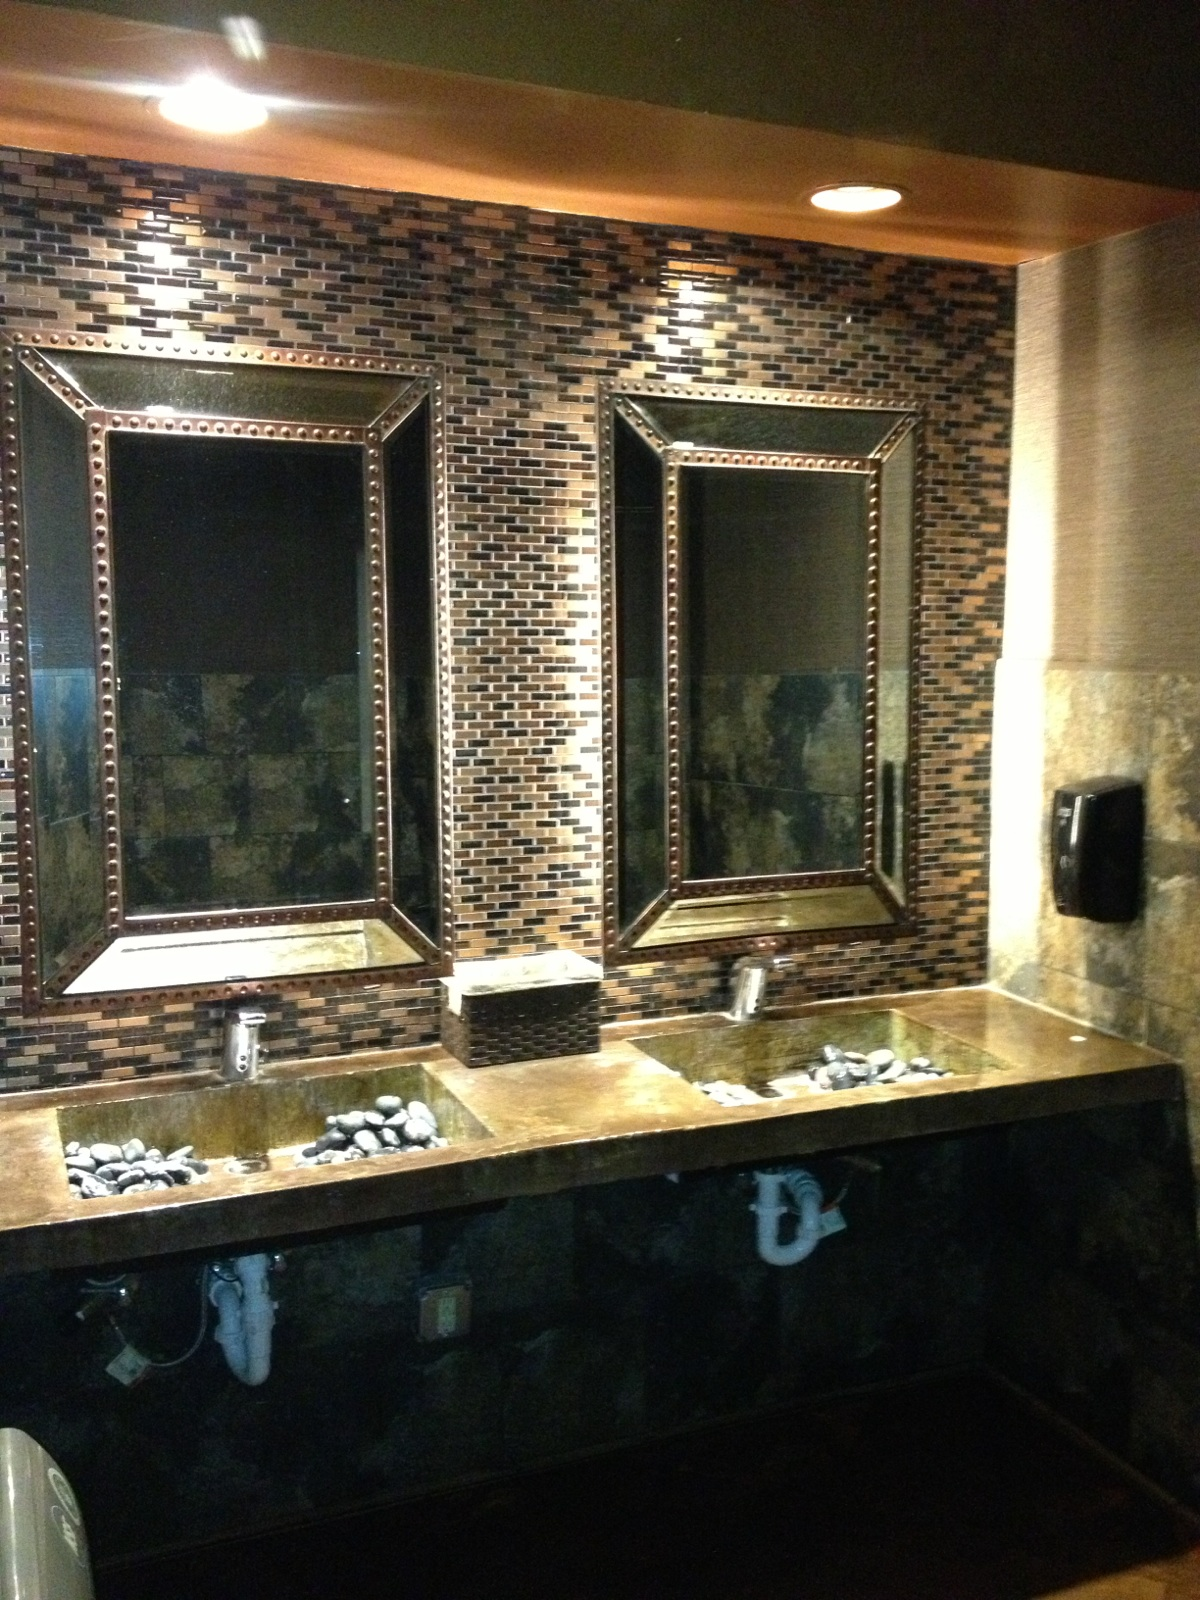 The Sassiest Restaurant Bathrooms in San Antonio